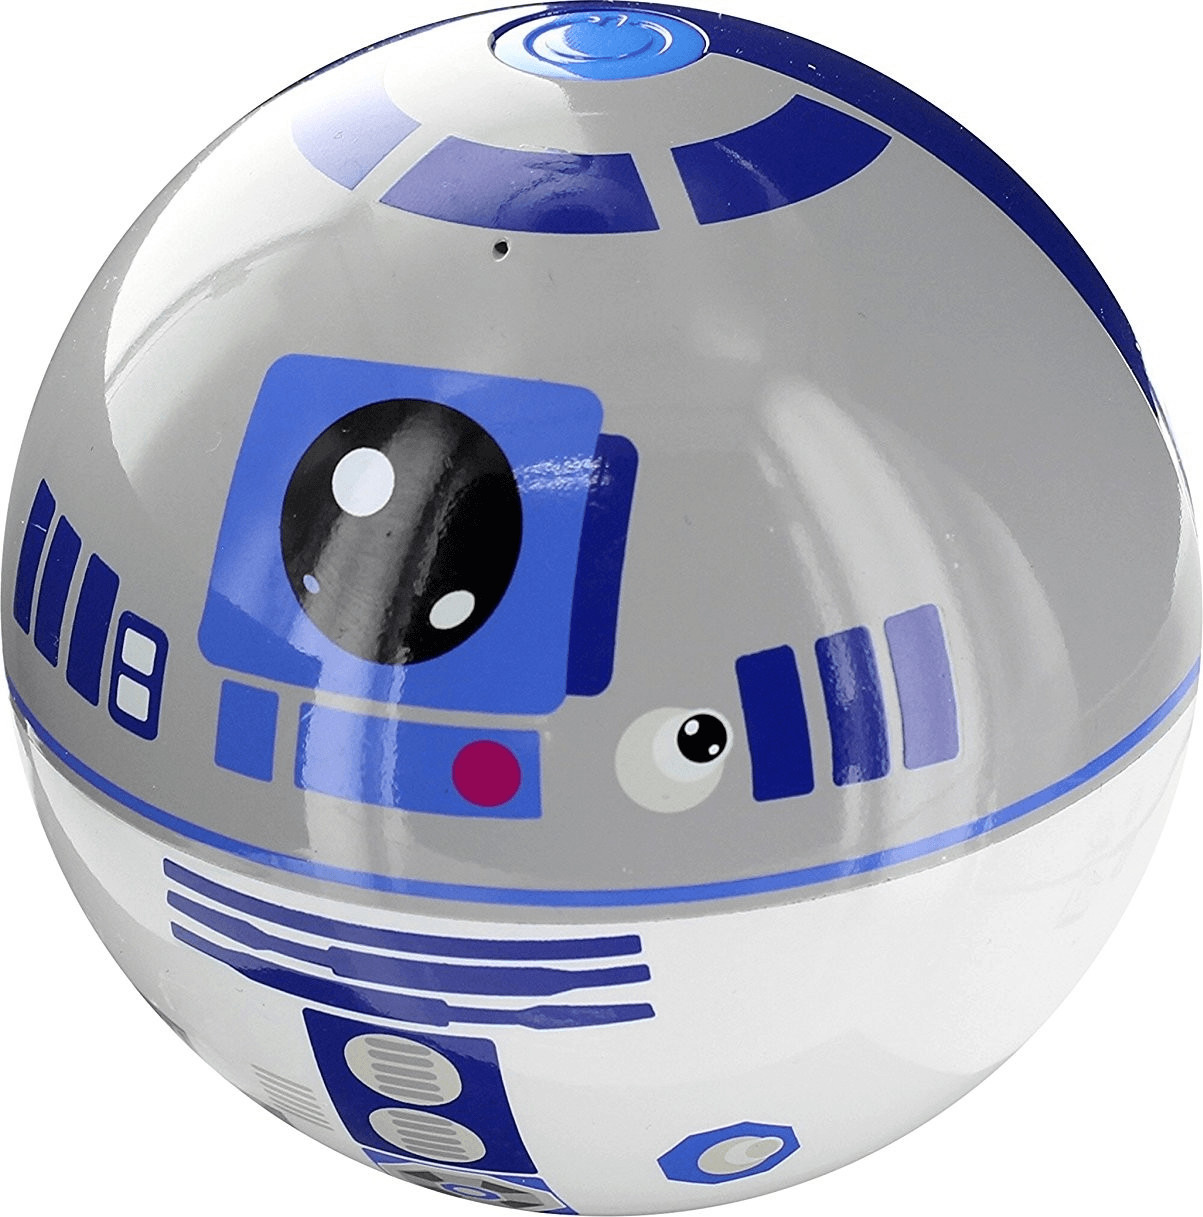 Image of Lazerbuilt Star Wars R2-D2 Portable Wired Speaker